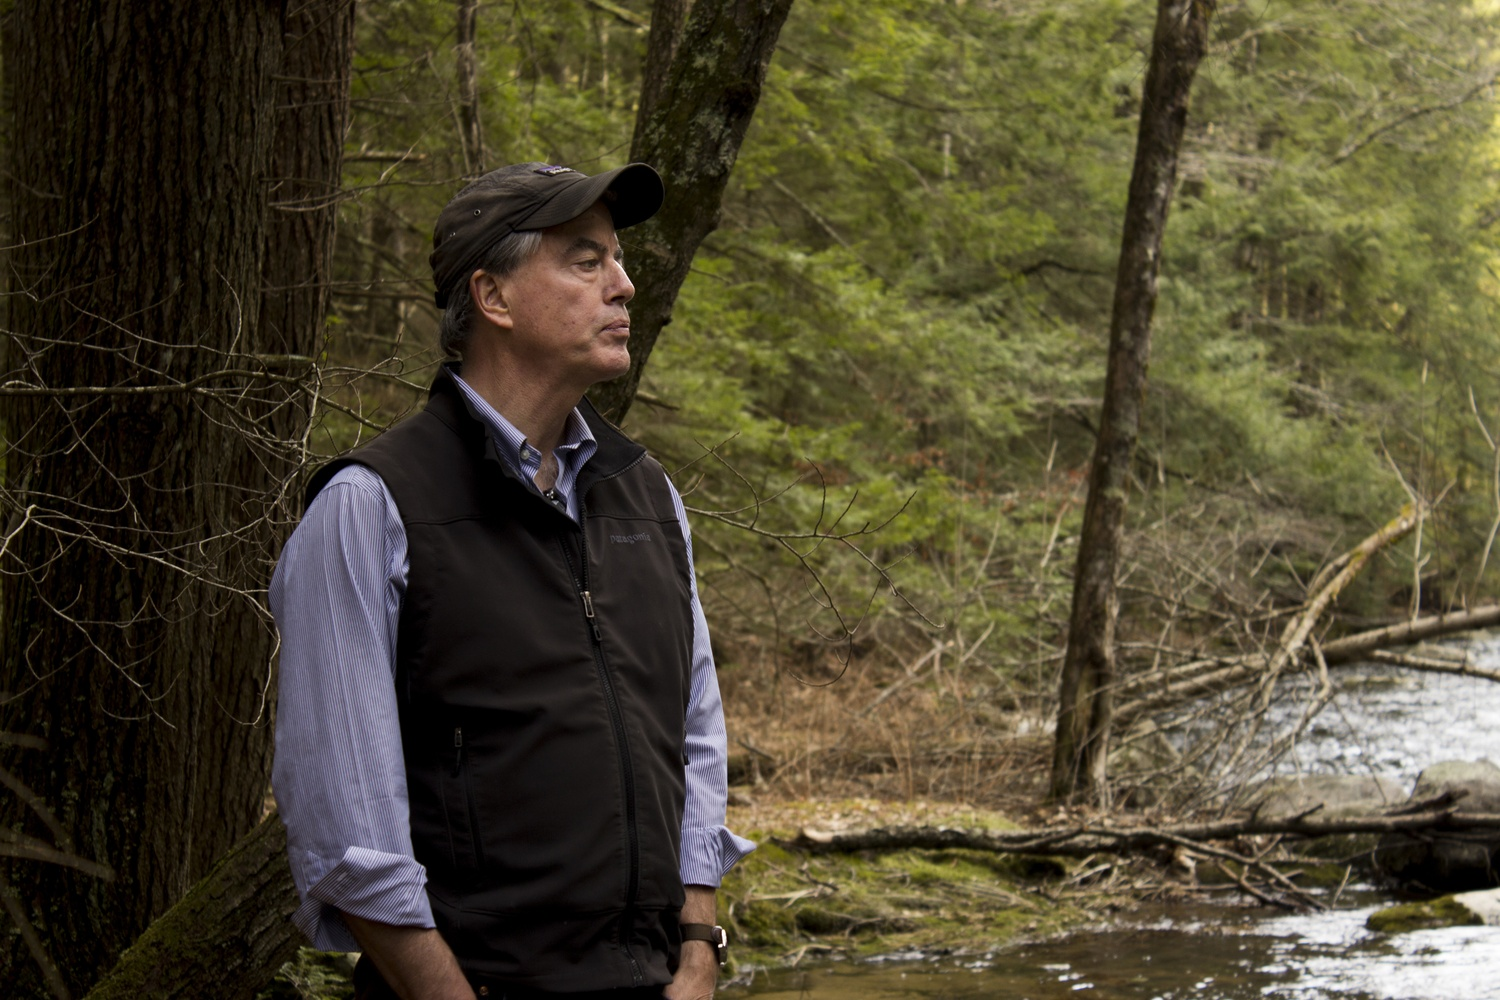 Director of the Harvard Forest David R. Foster surveys neighboring hemlock trees in one of the only areas of the forest which exists purely for observational purposes.